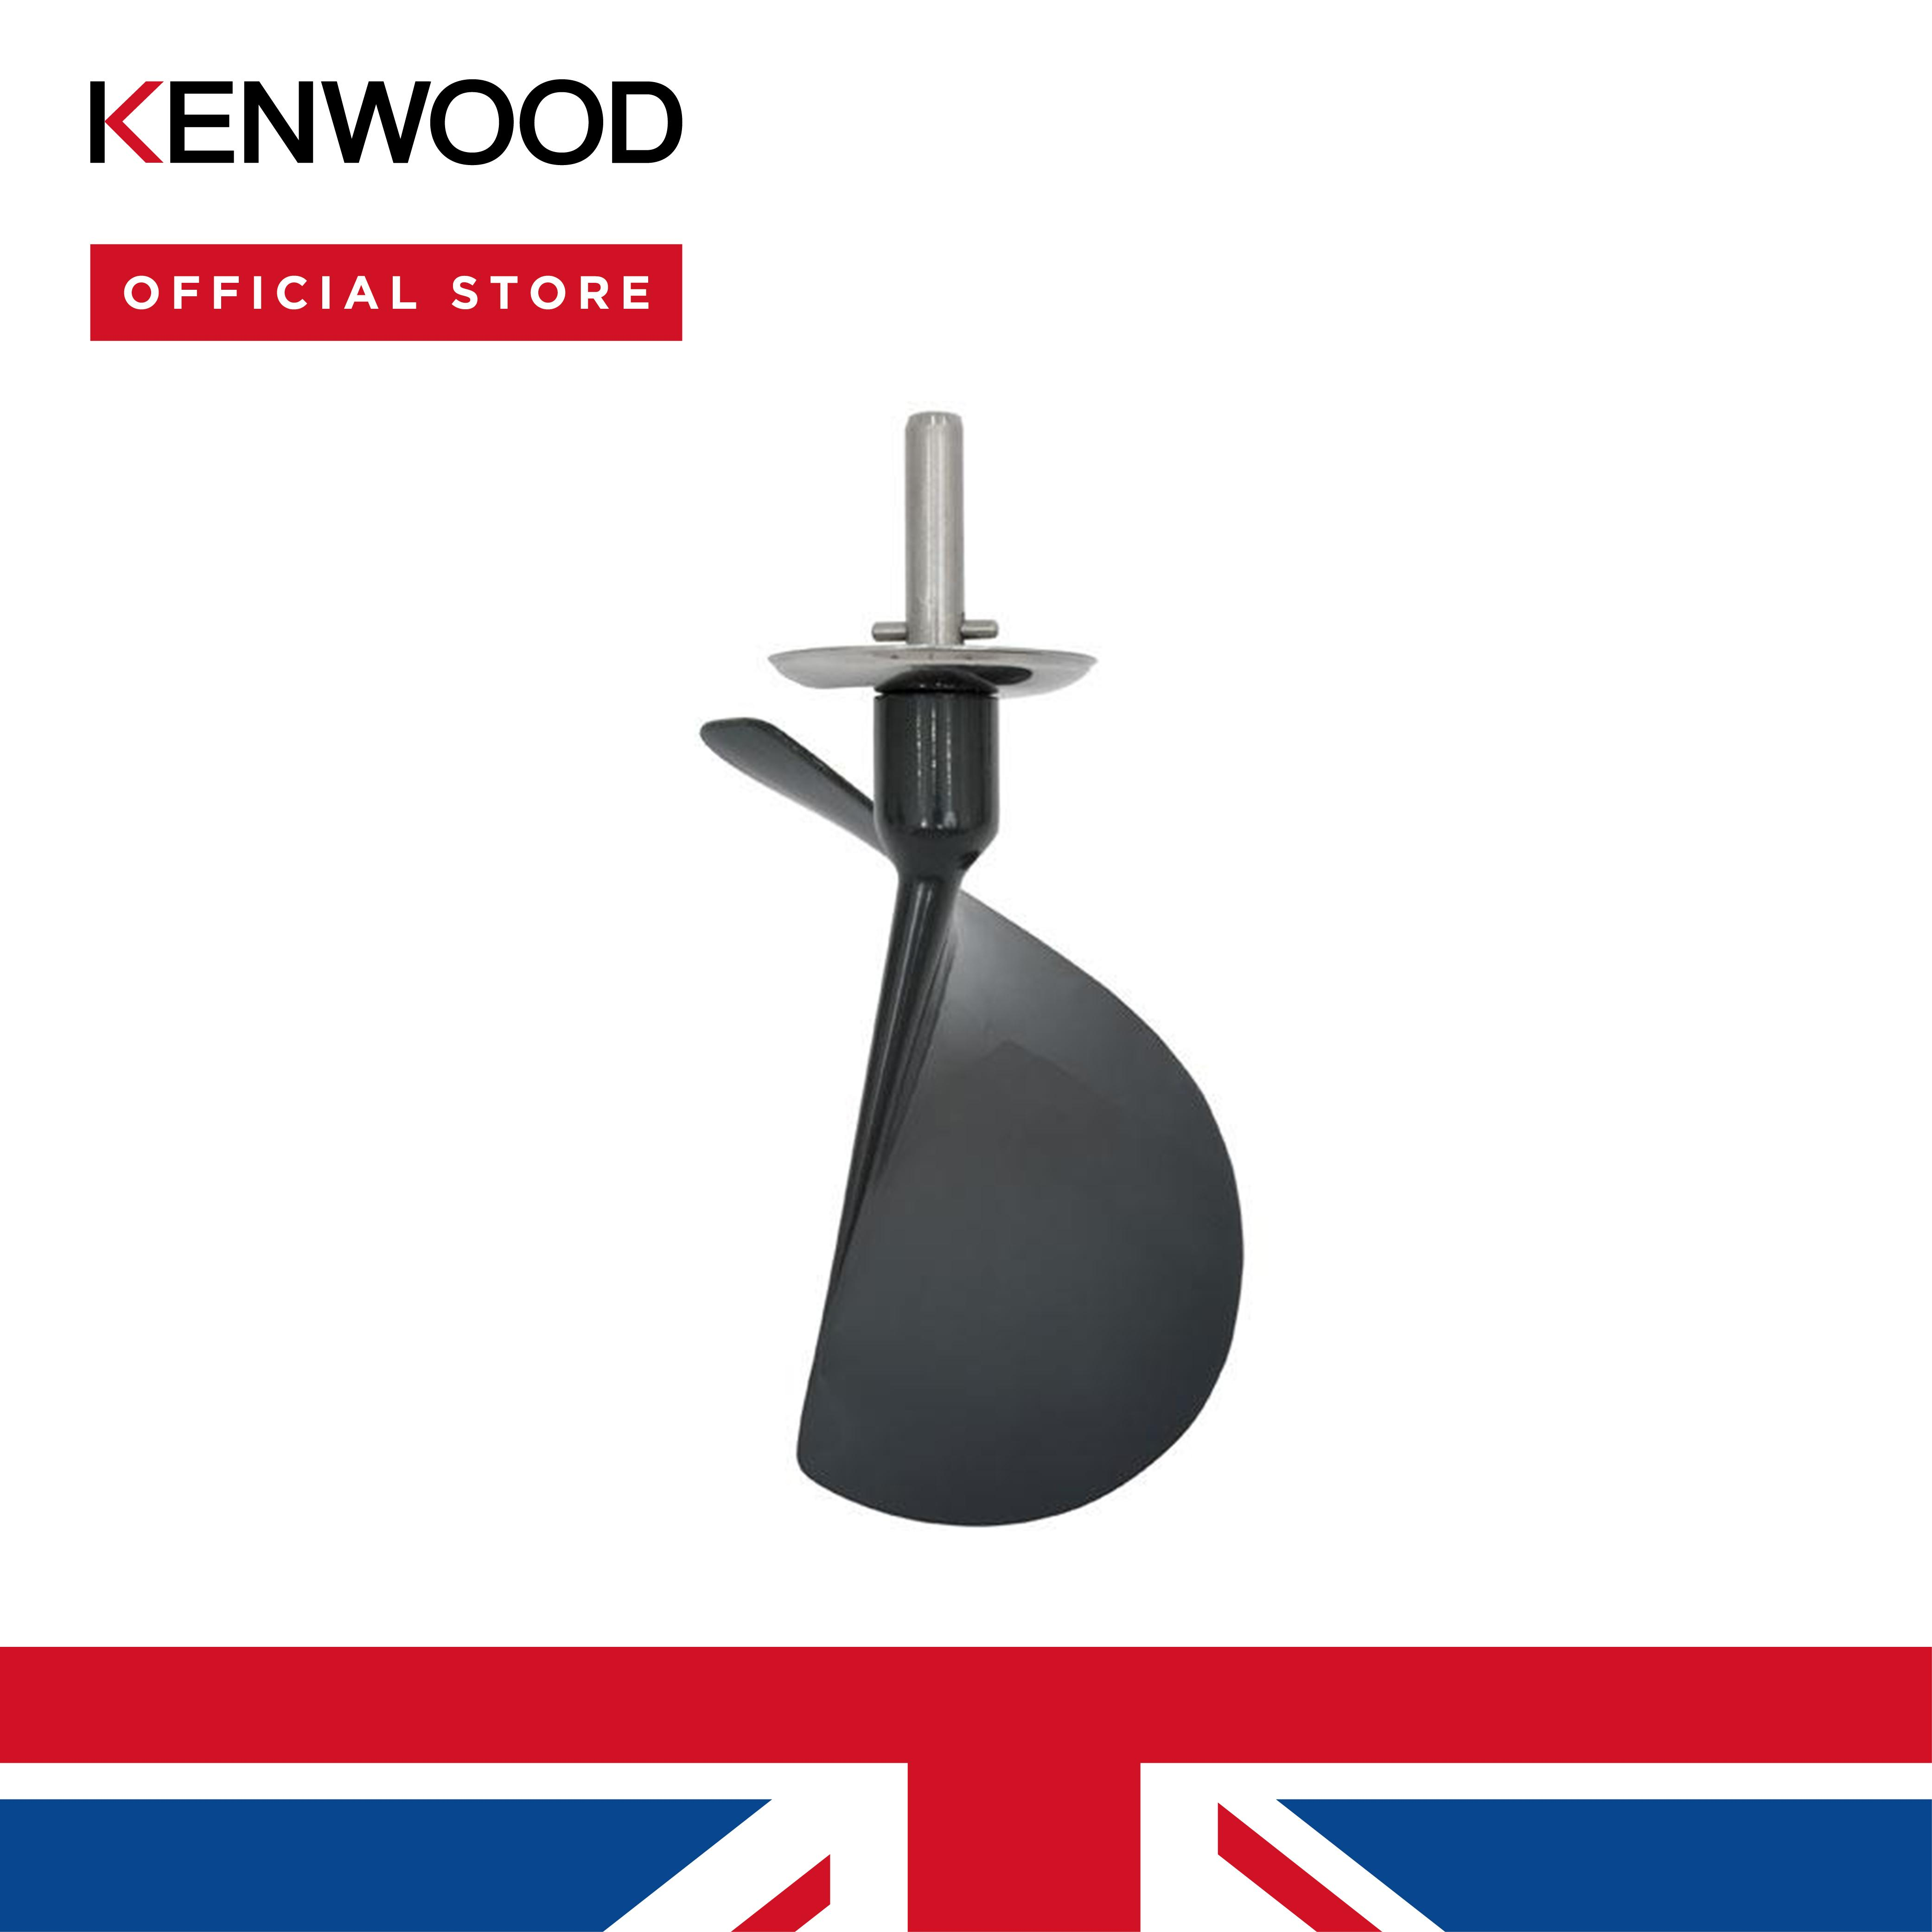 Kenwood Chef Sized Folding Tool Attachment At 511